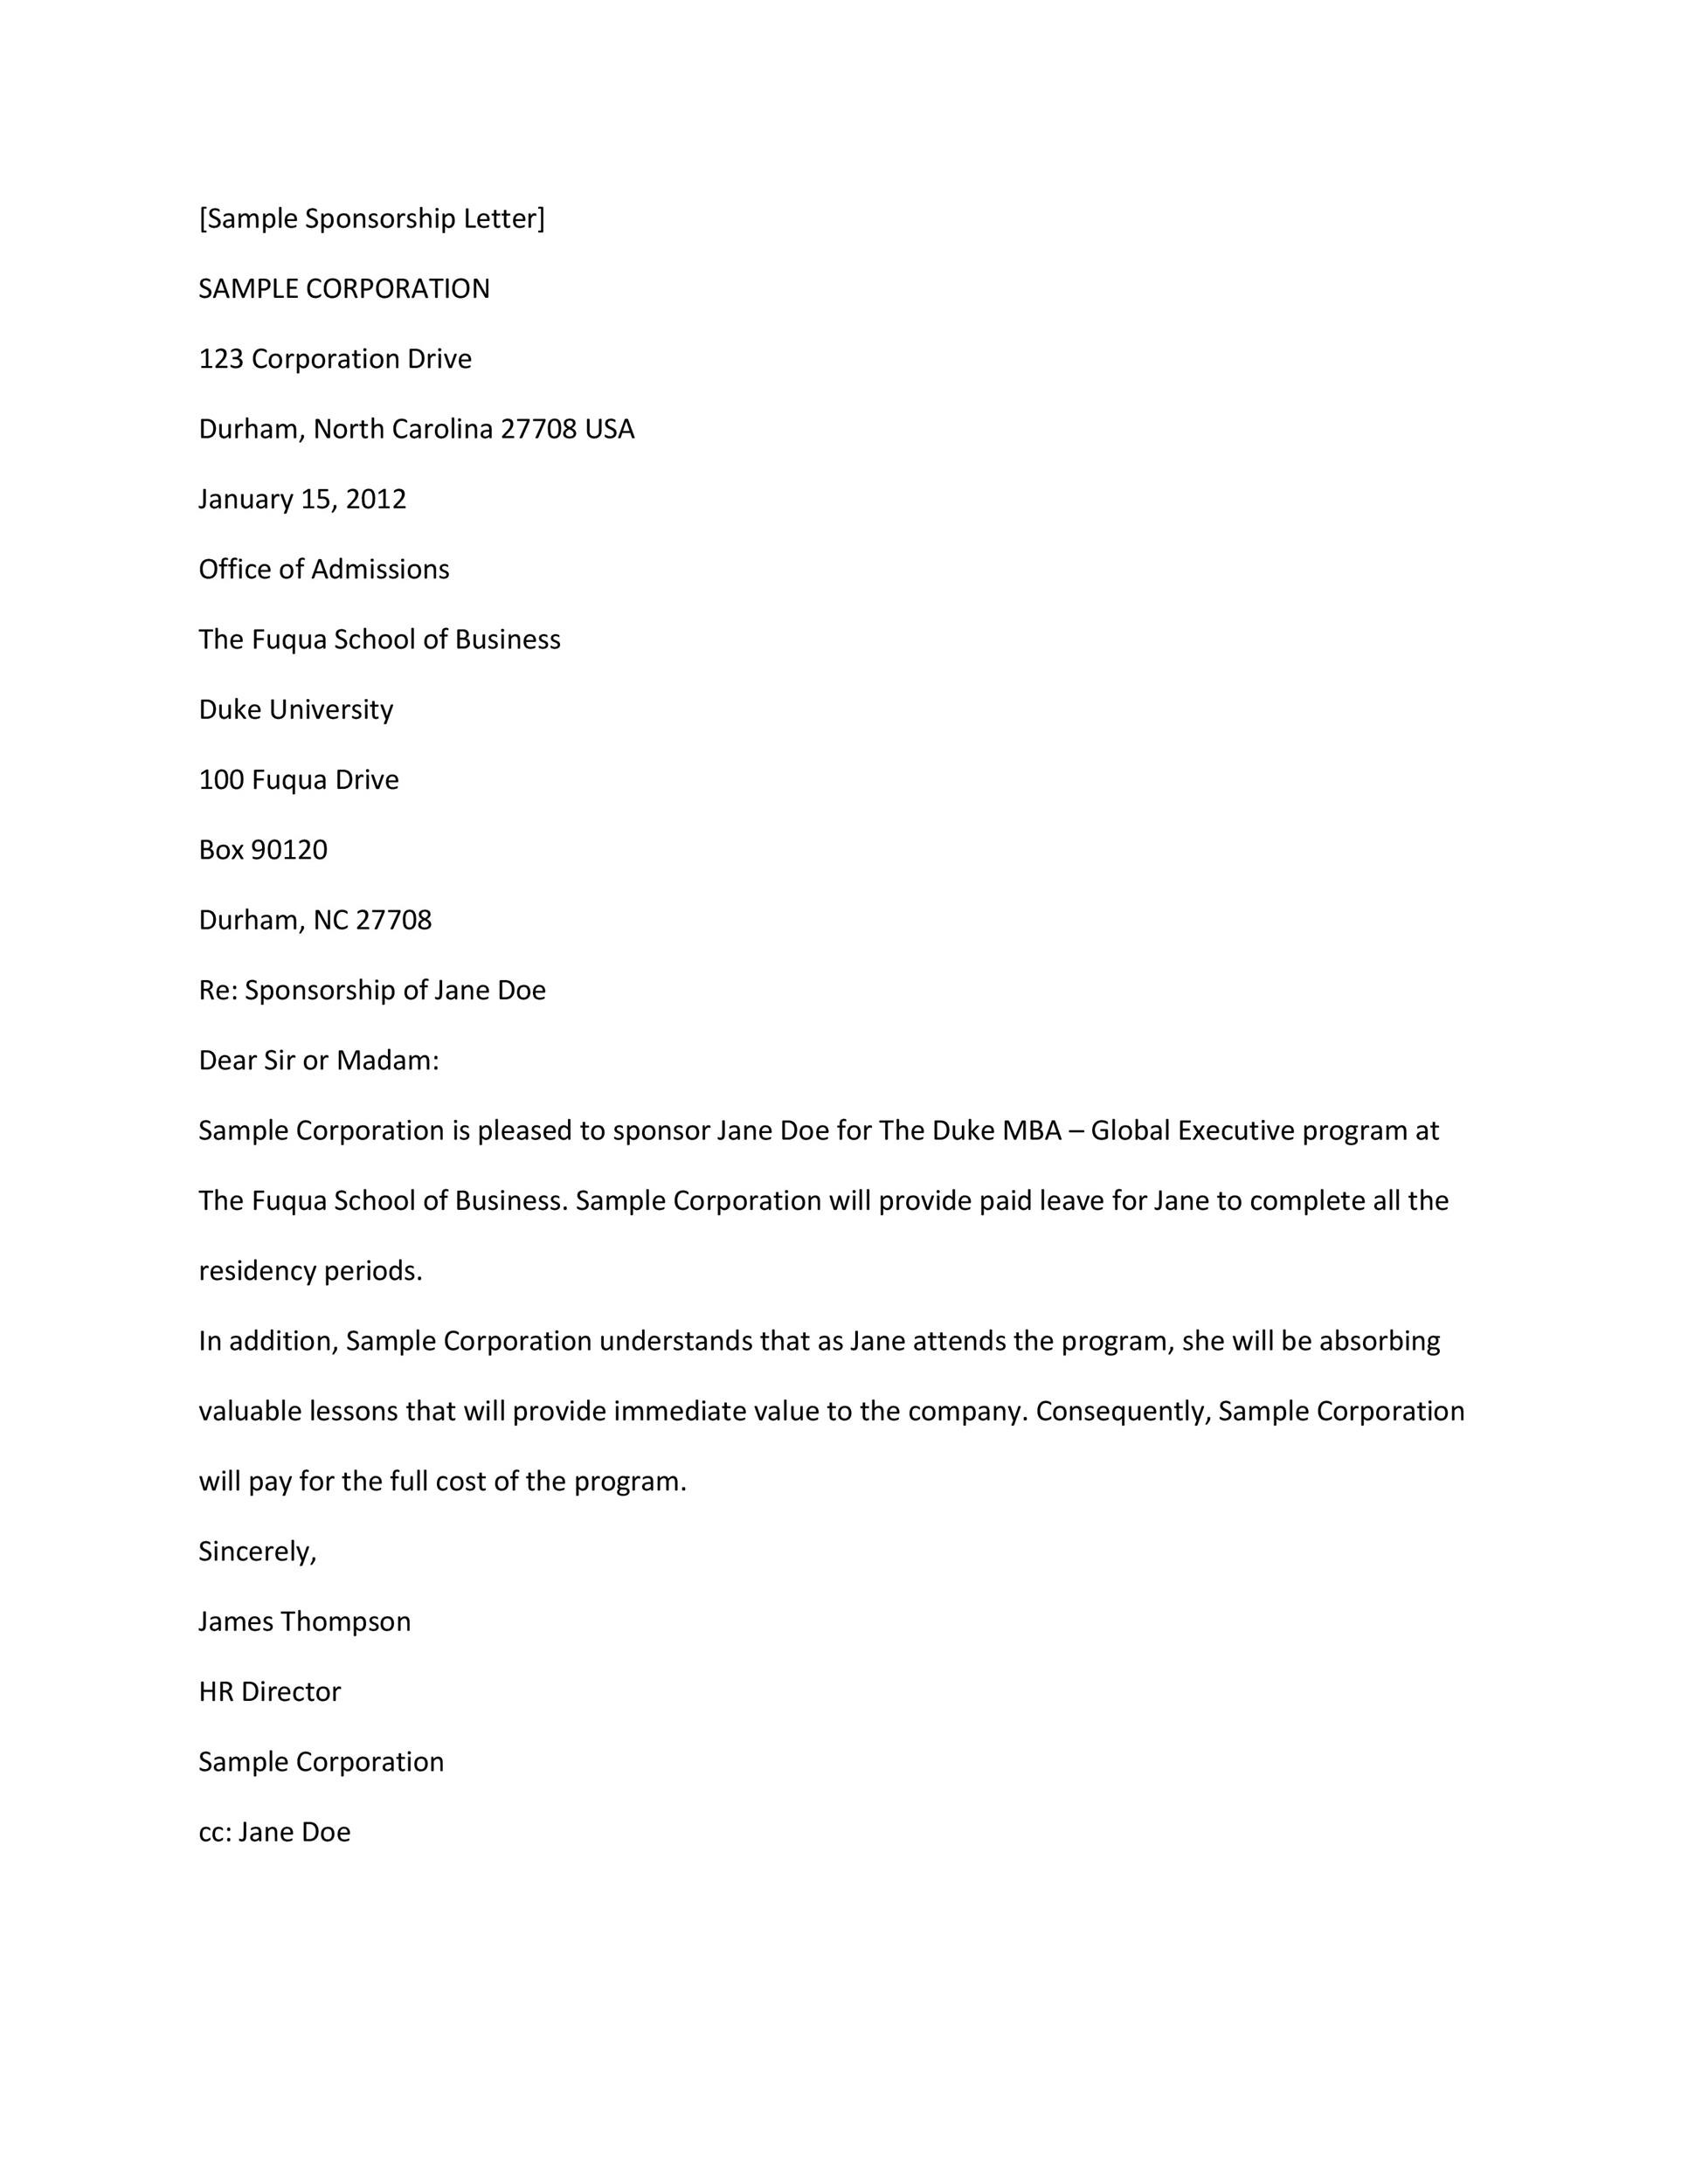 40 Sponsorship Letter Sponsorship Proposal Templates – Event Sponsorship Agreement Template